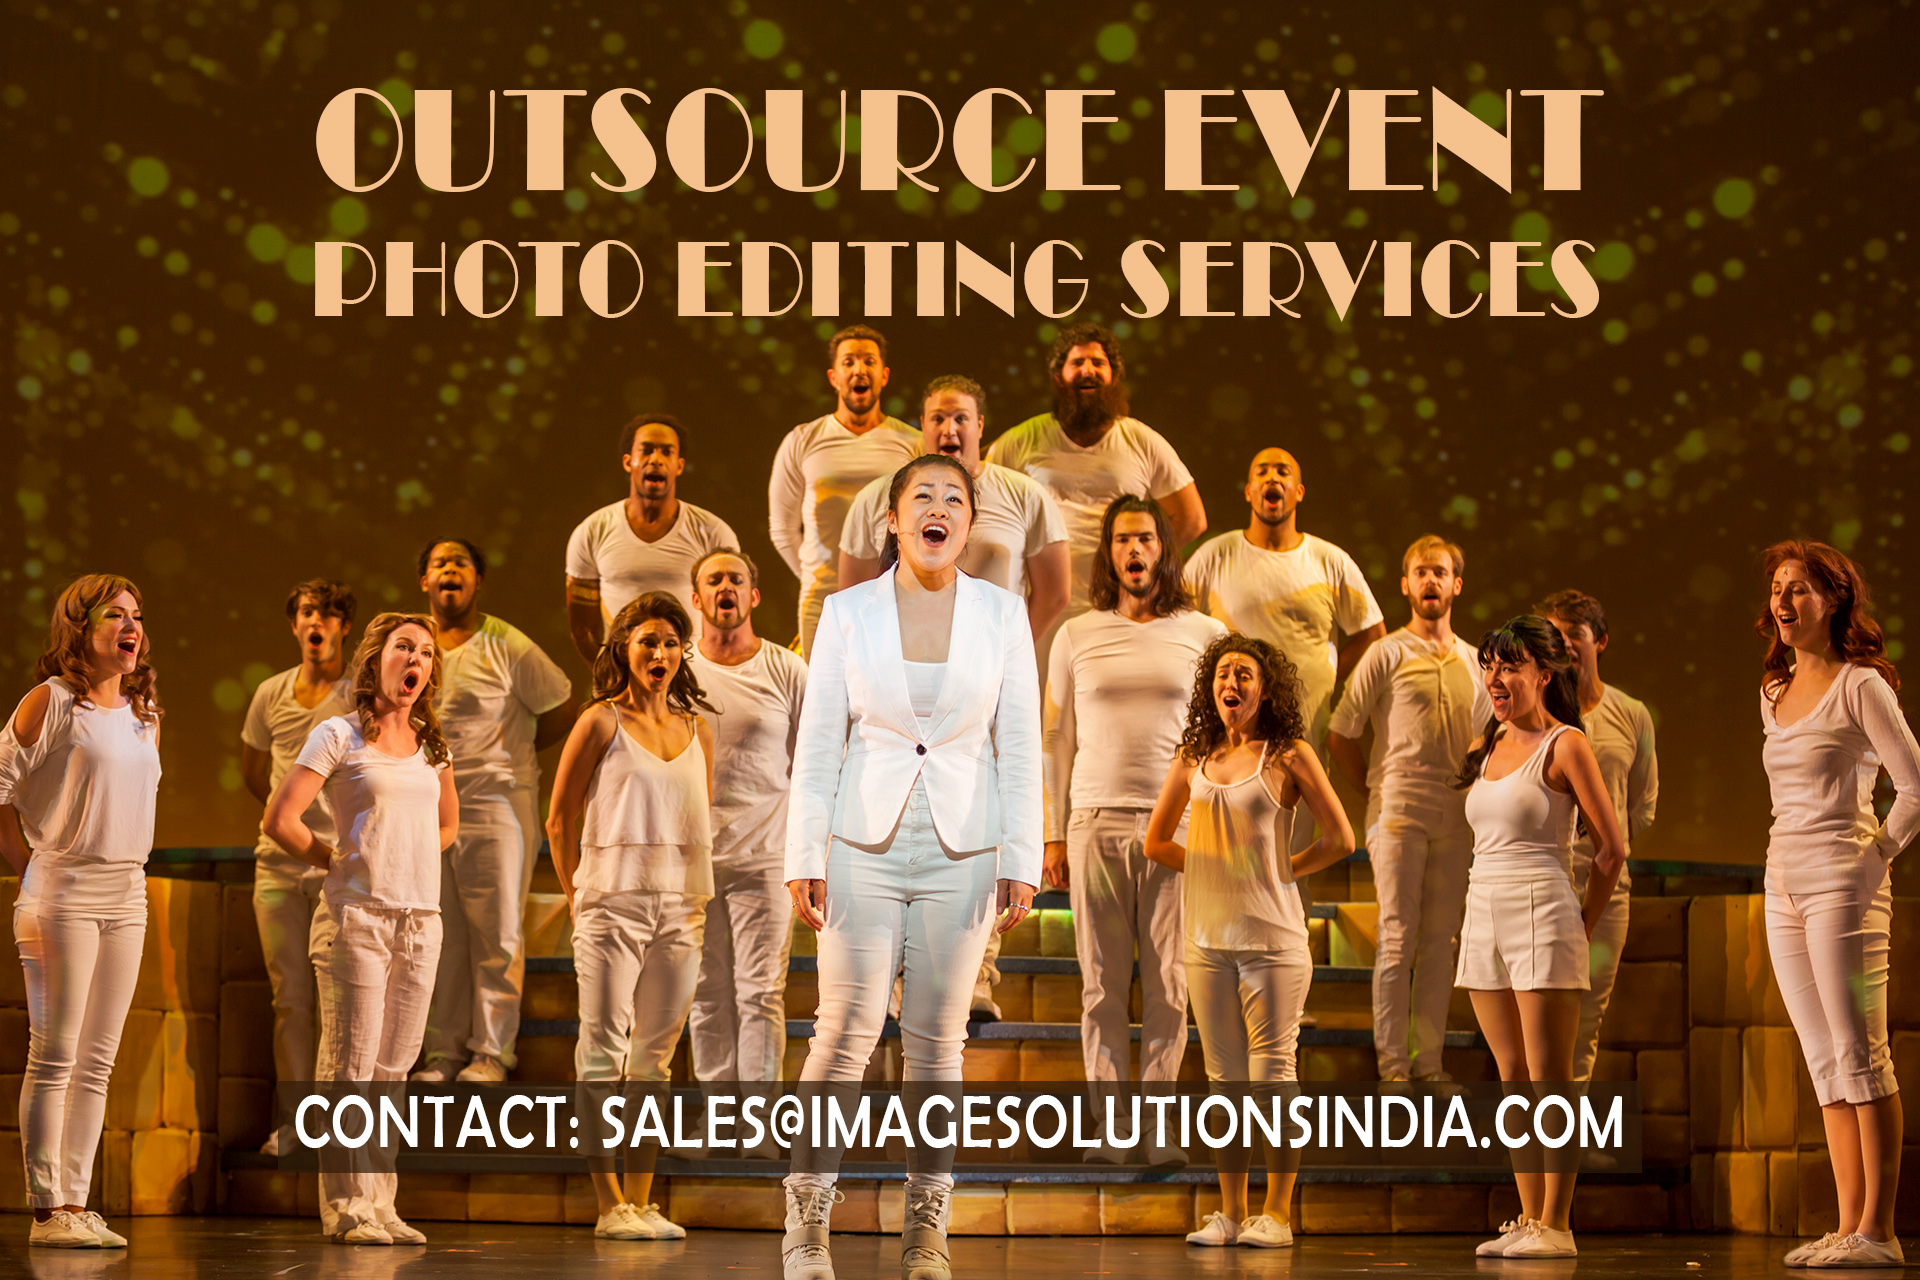 Outsource Event Photography services | Event Image Editing services